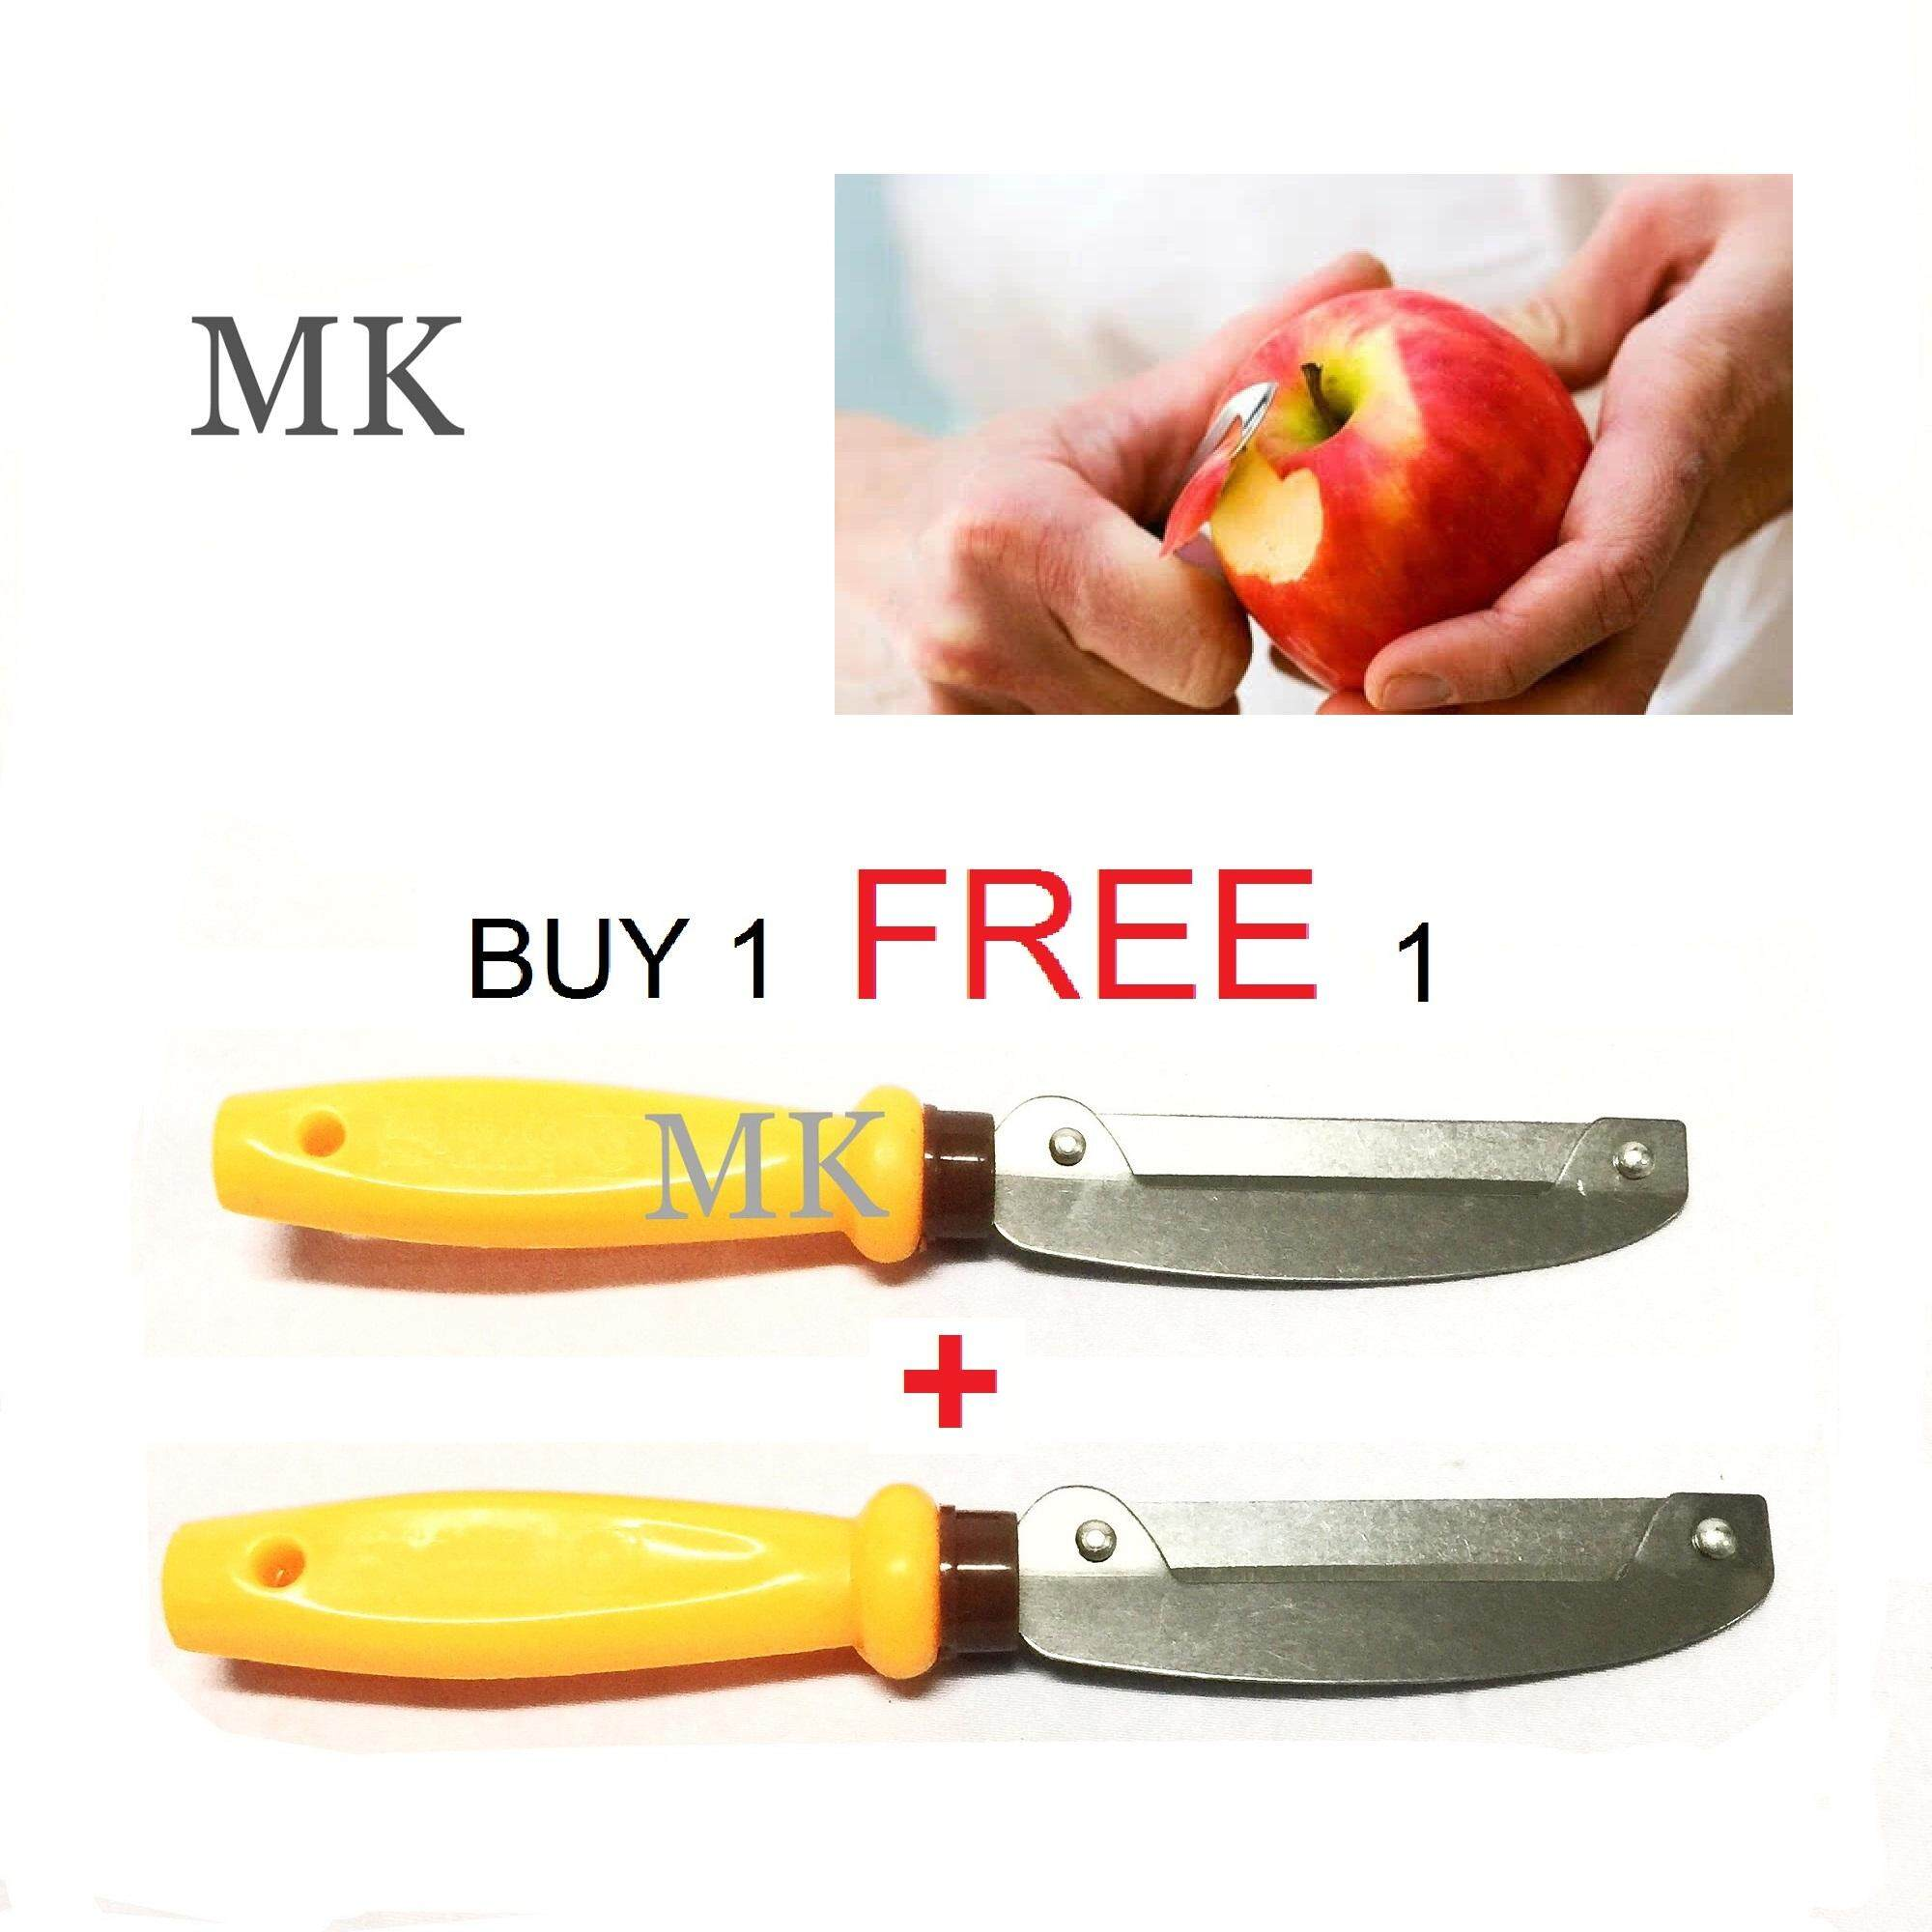 (buy 1 Free 1) High Quality Cut Fruit Peel Knife (orange Handle) By Mk Motorsport.